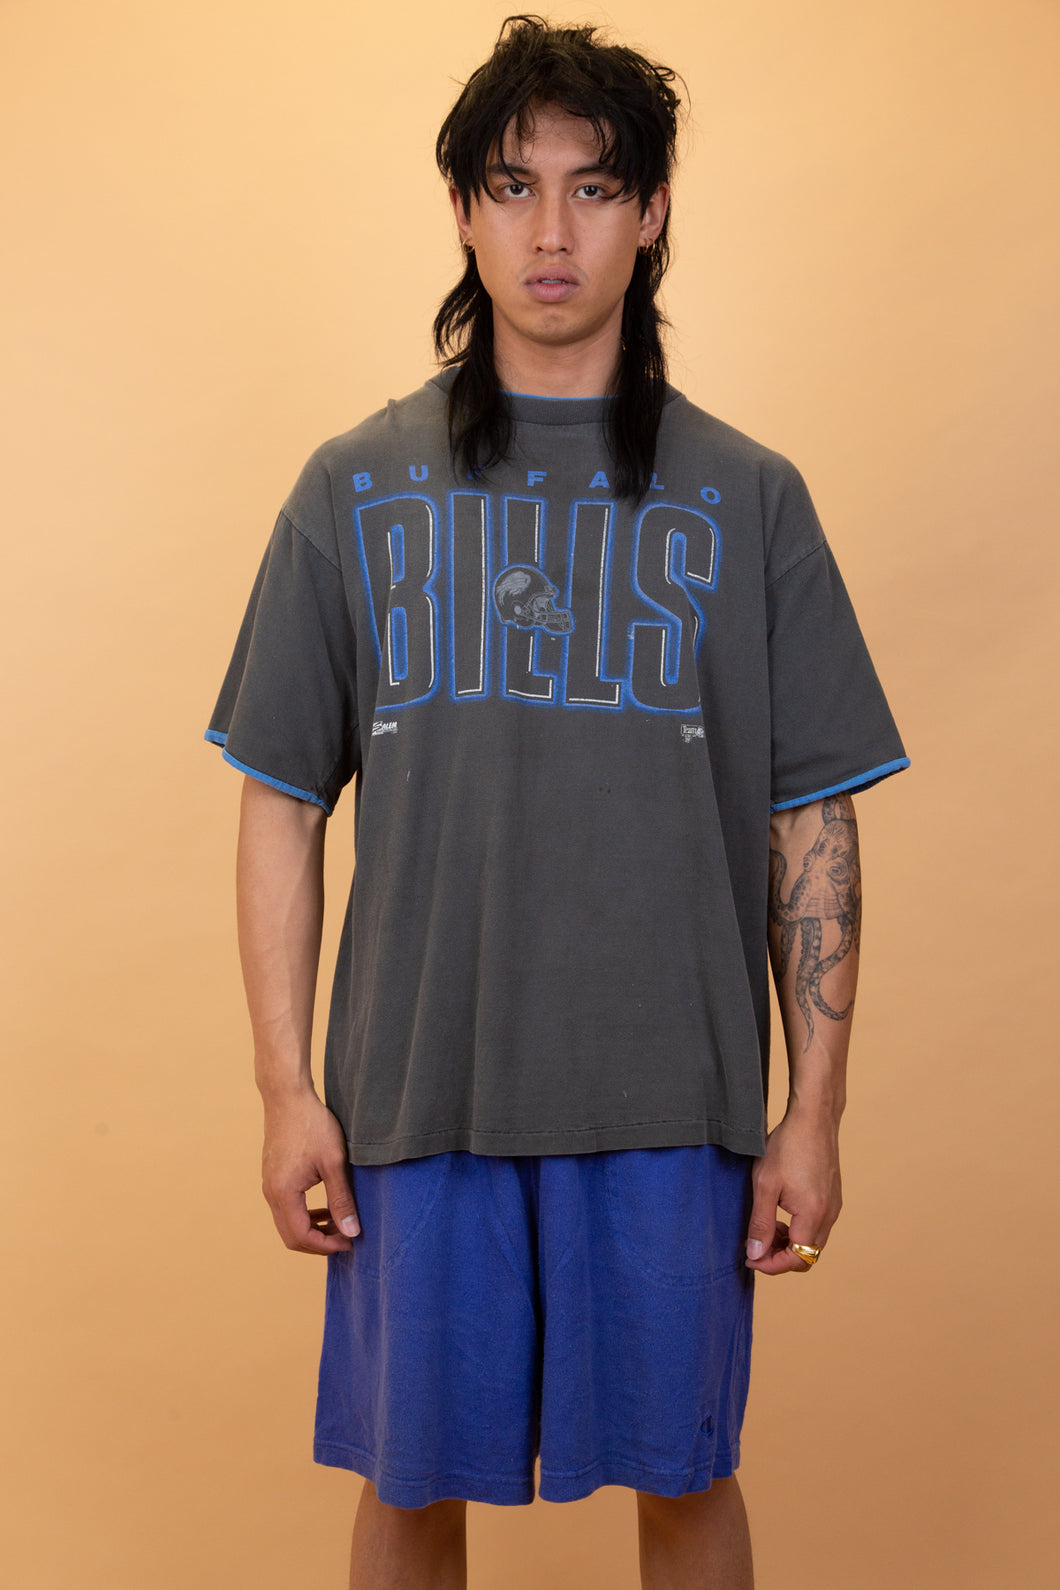 The model is wearing a Buffalo Bills tee which features the logo on the front